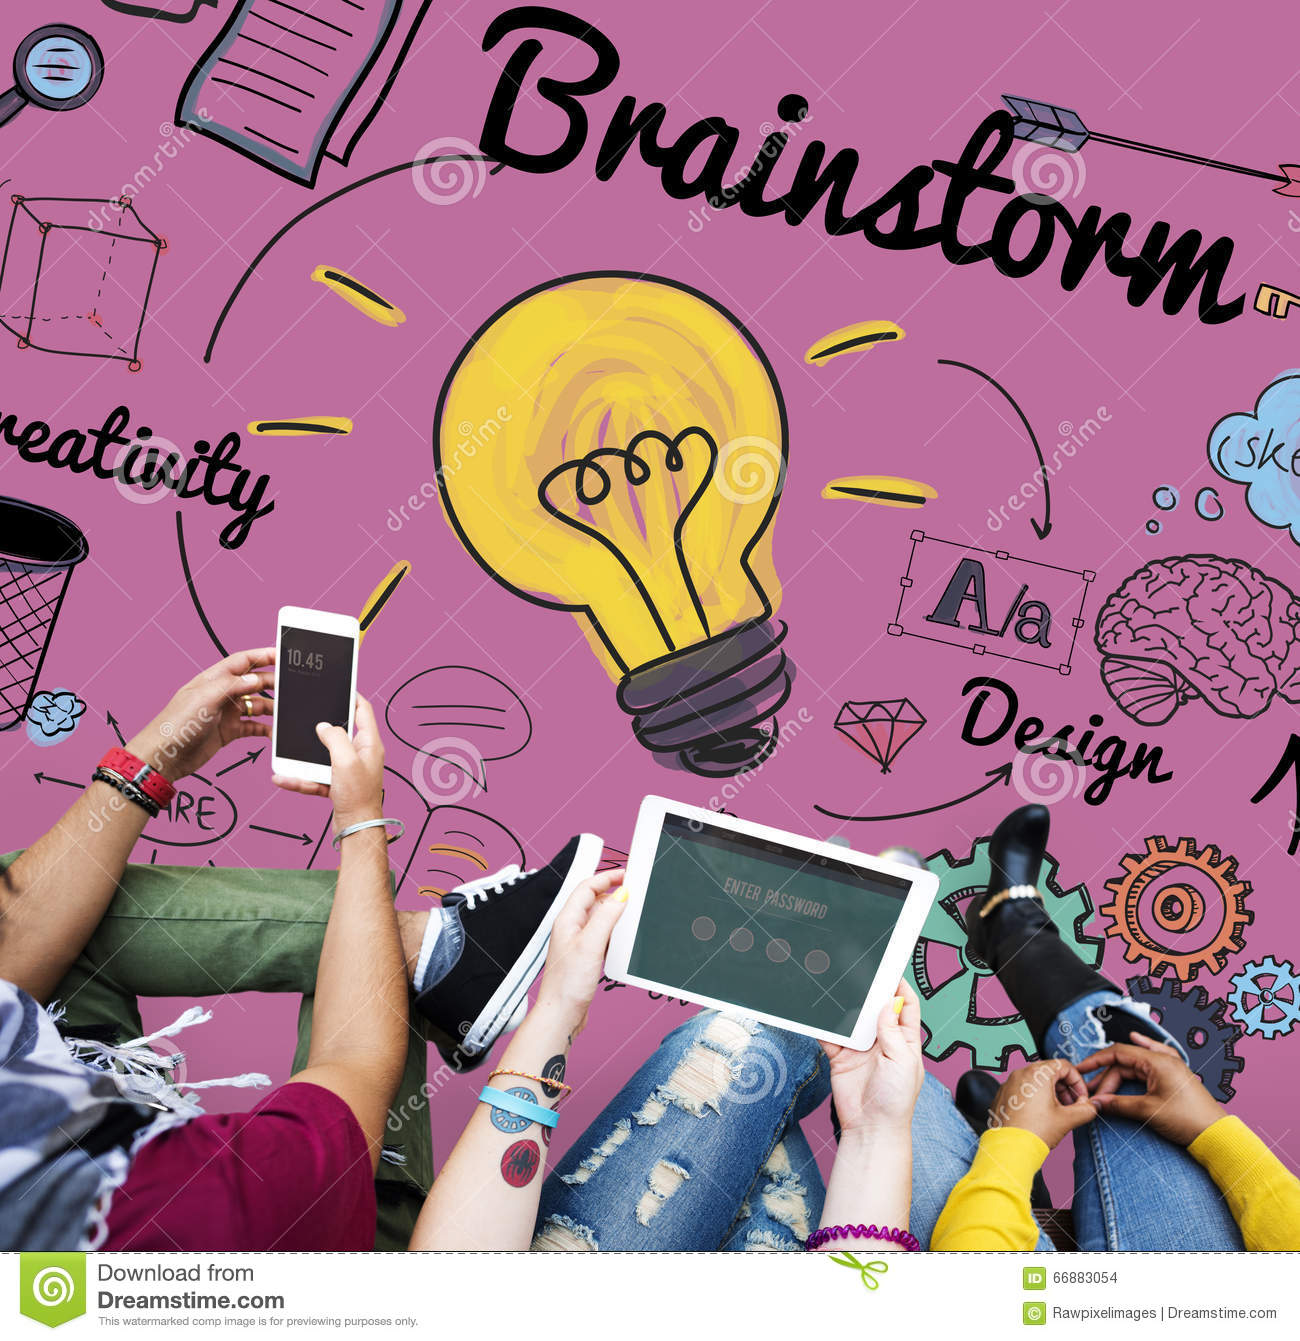 an analysis of brainstorming Brainstorming is a team creativity activity that helps generate a large number of potential solutions to a problem  design step 3: brainstorm possible solutions .